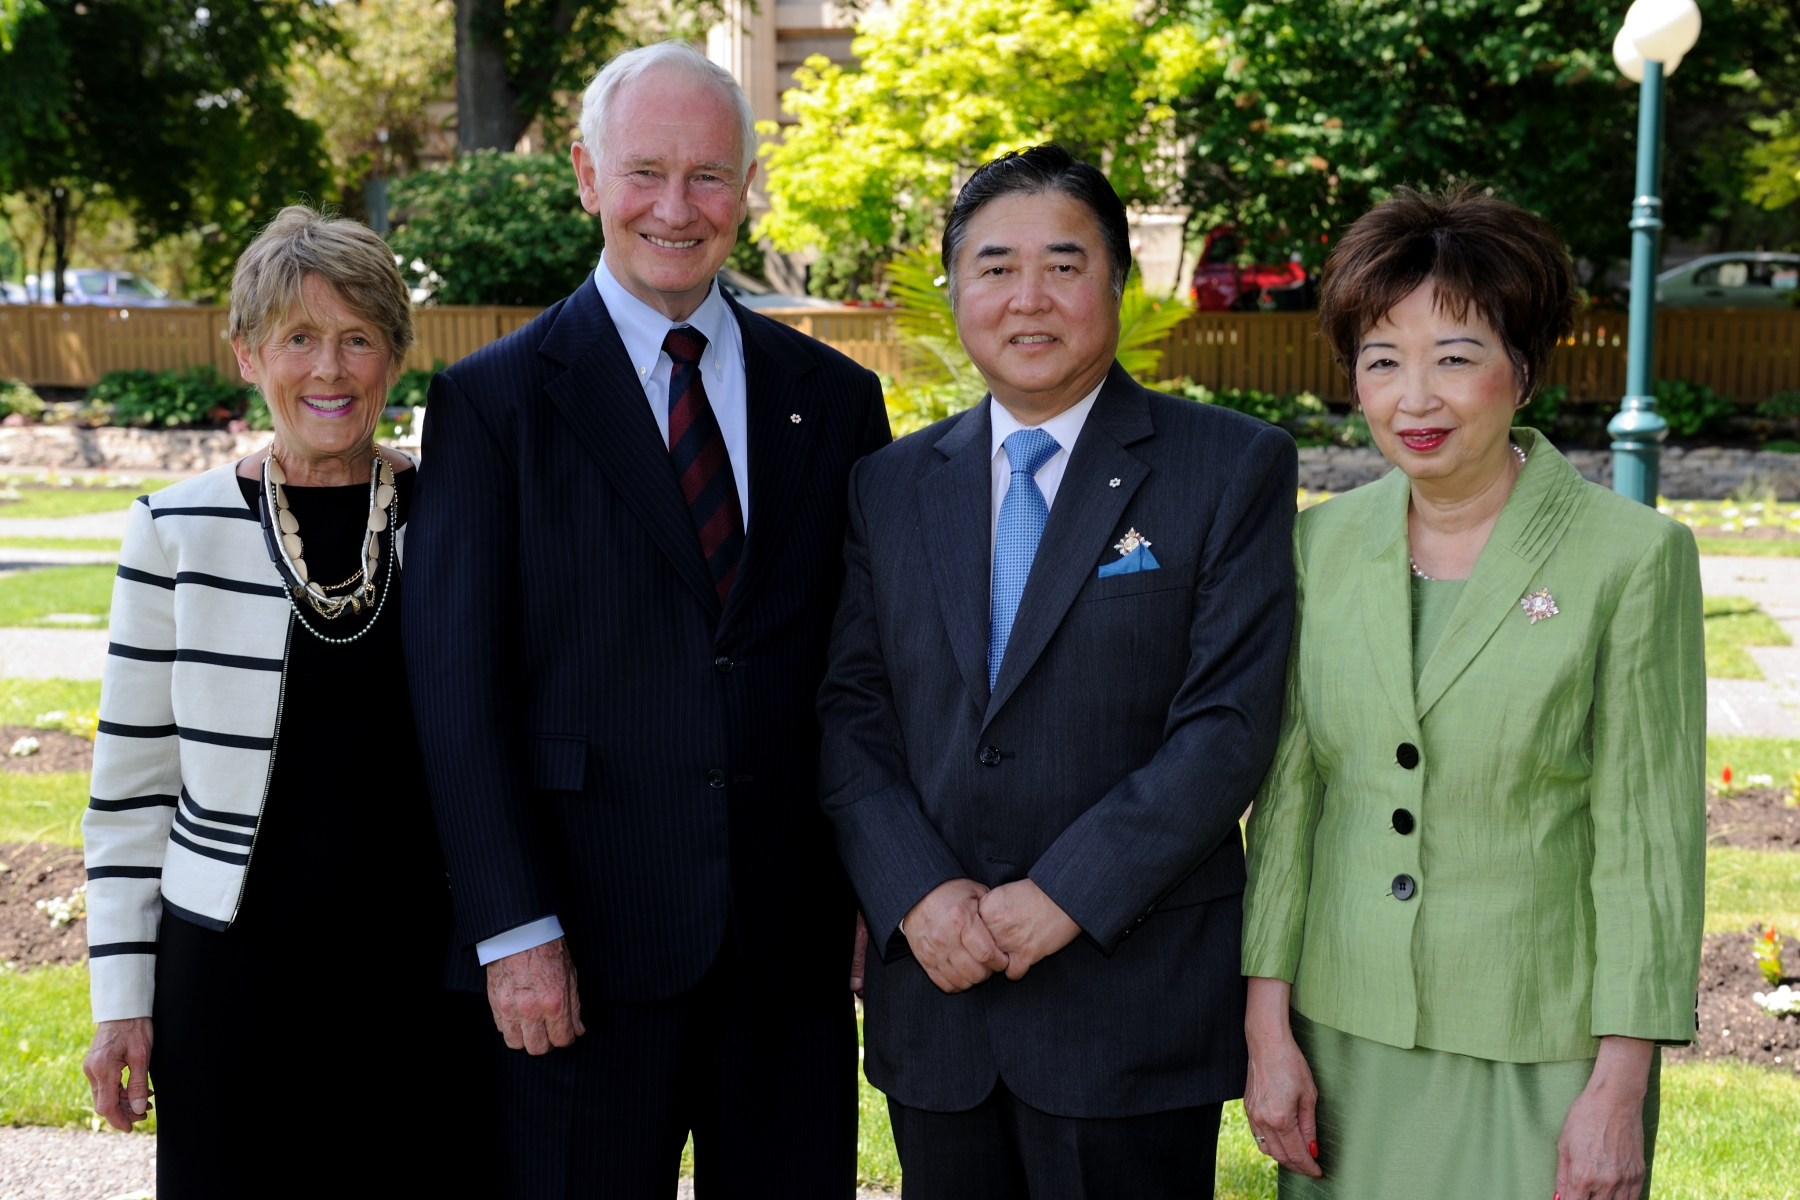 Their Excellencies also met with the Their Honours the Honourable Philip Lee, Lieutenant Governor of Manitoba, and his spouse, Mrs. Anita Lee.